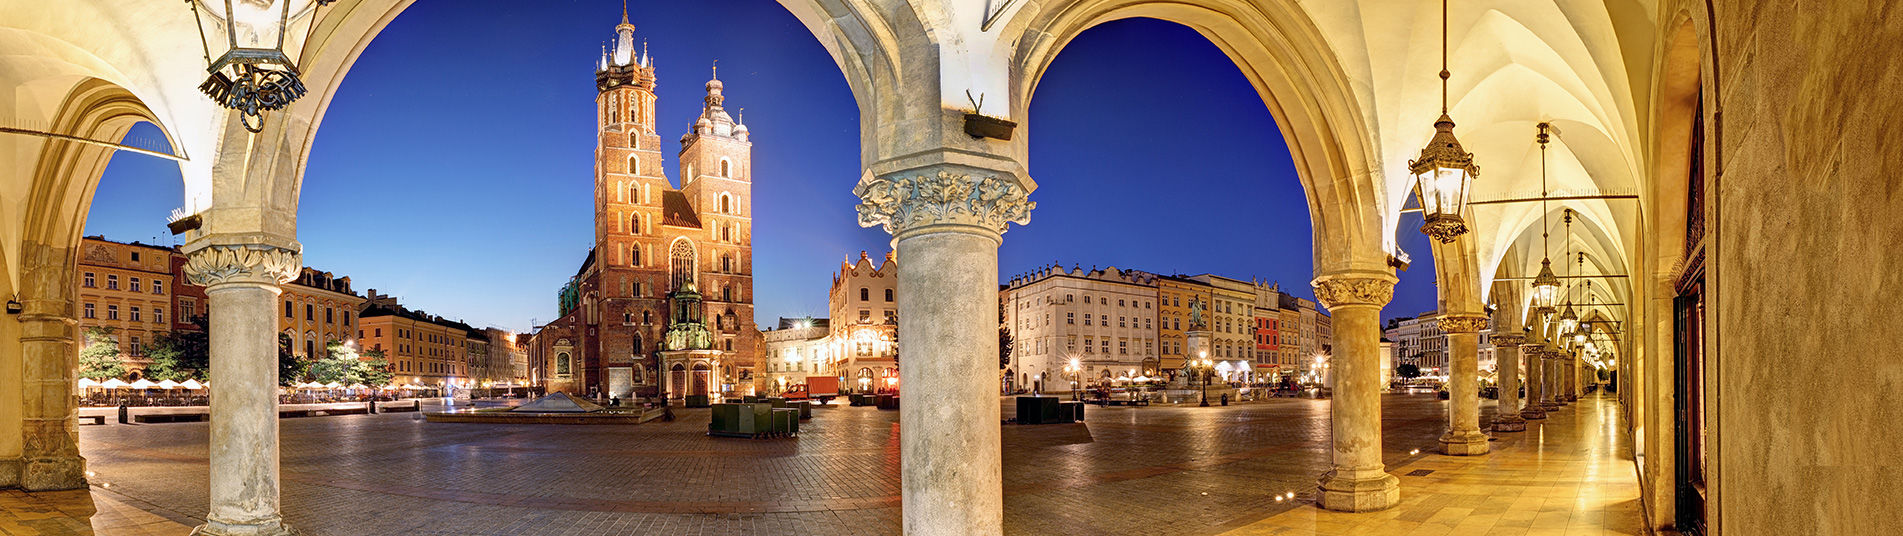 Place à Cracovie, Pologne